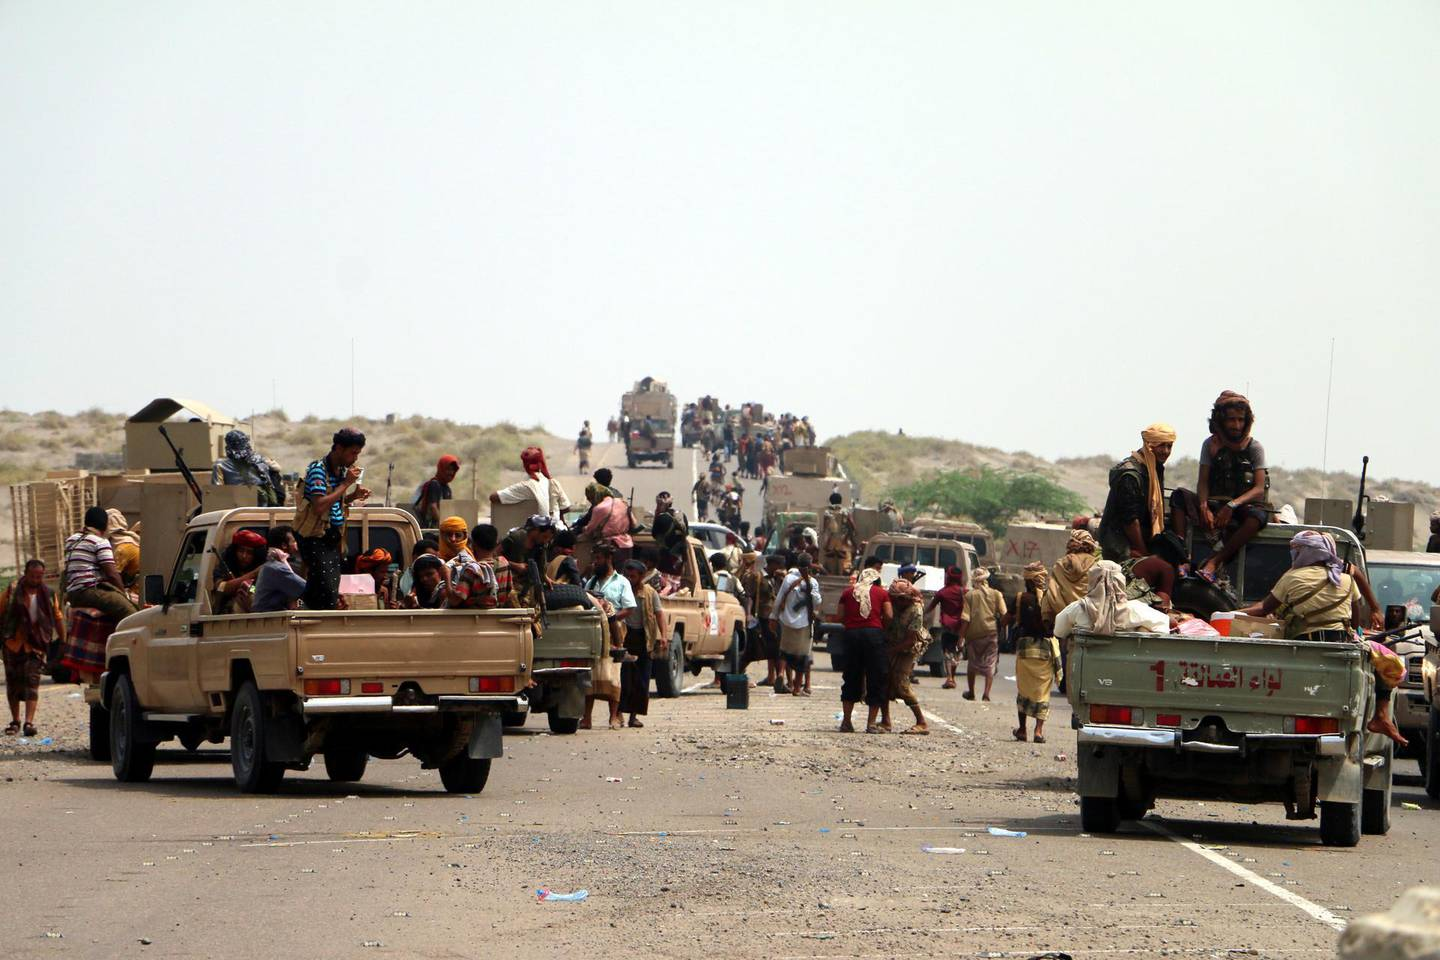 epa06768610 Yemeni government forces backed by the Saudi-led coalition take position at an area after seizing it from the Houthi militia in the western province of Hodeidah, Yemen, 27 May 2018 (issued 28 May 2018). According to reports, Yemeni troops backed by the Saudi-led coalition have moved closer to a key Houthis-held port and strategic city of Hodeidah after Yemeni government forces seized Houthis-held areas along the western coast. Most of Yemen's food and medicine imports and aid are shipped through Hodeidah port.  EPA/STRINGER